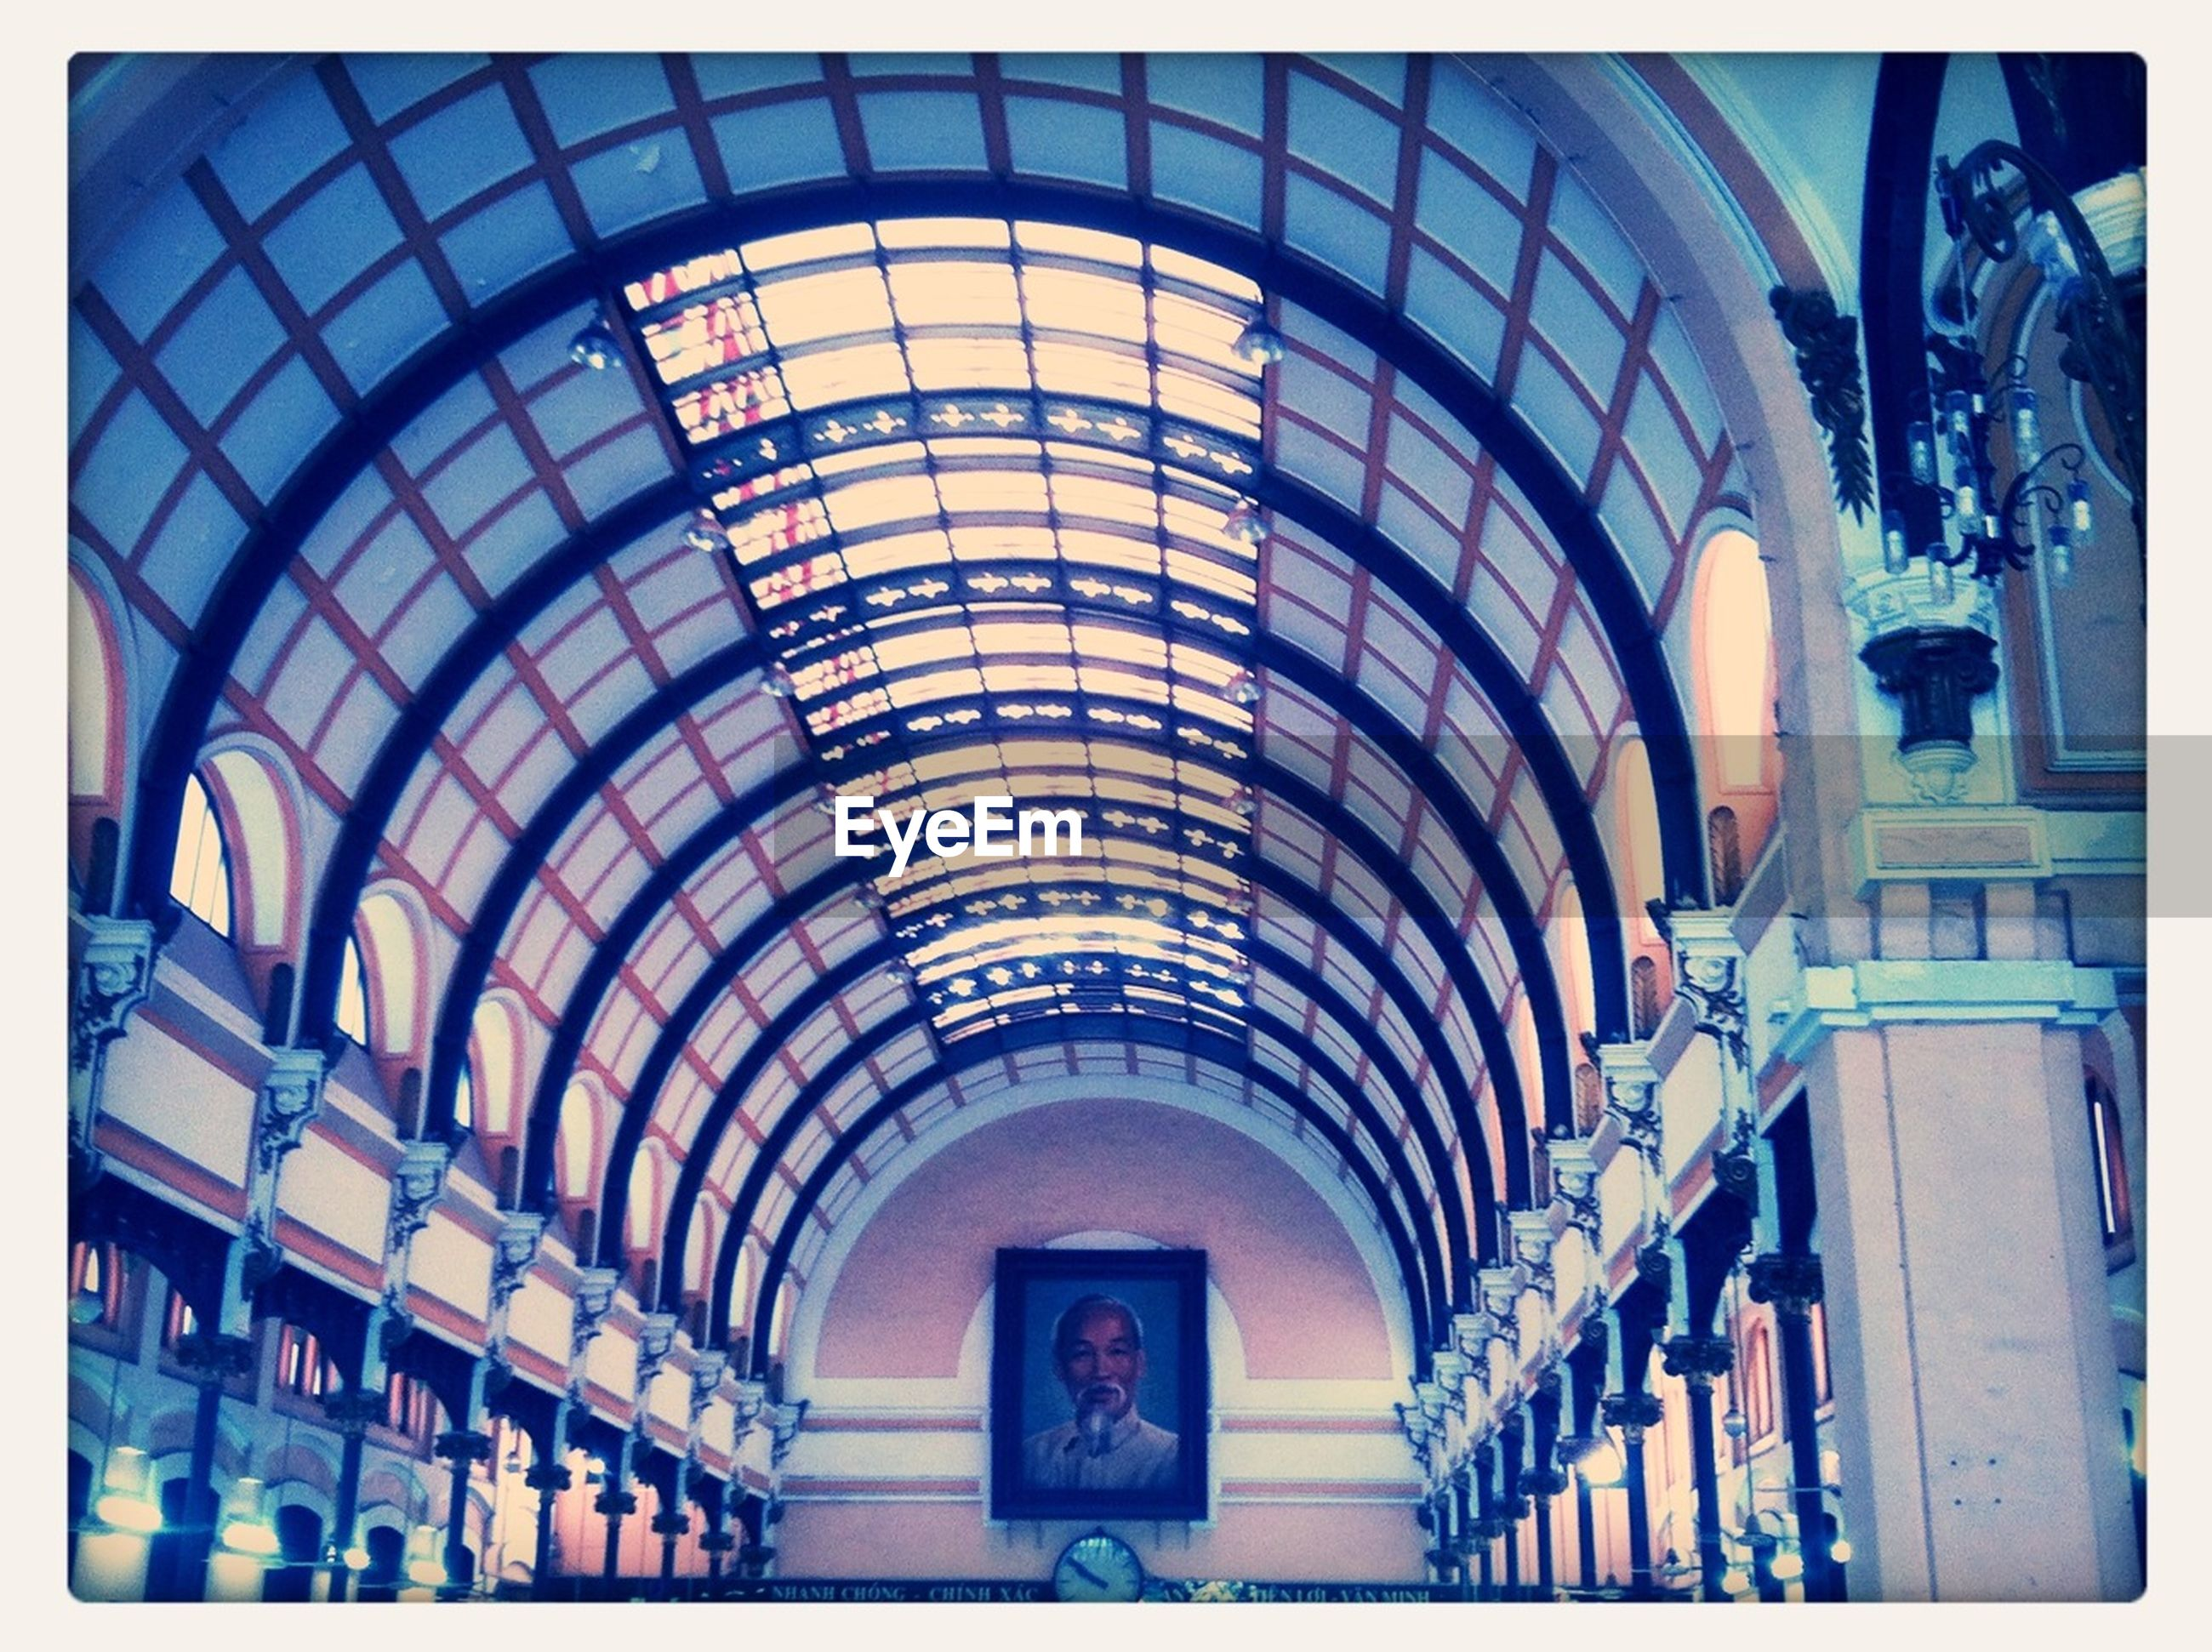 arch, indoors, ceiling, architecture, human representation, built structure, low angle view, sculpture, day, no people